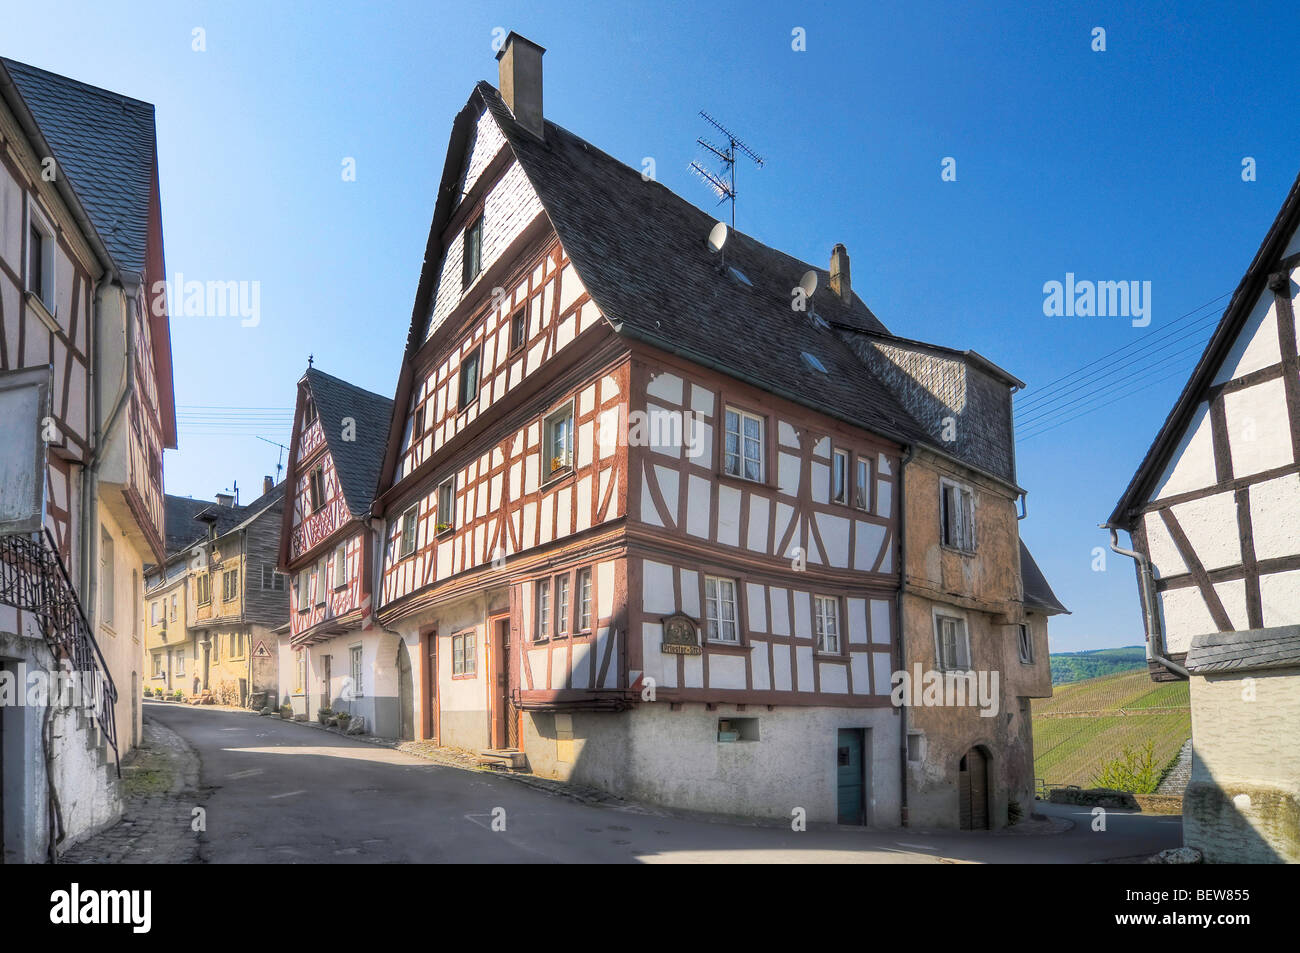 Half-timber houses in Enkirch on the Moselle, Rhineland-Palatinate, Germany - Stock Image